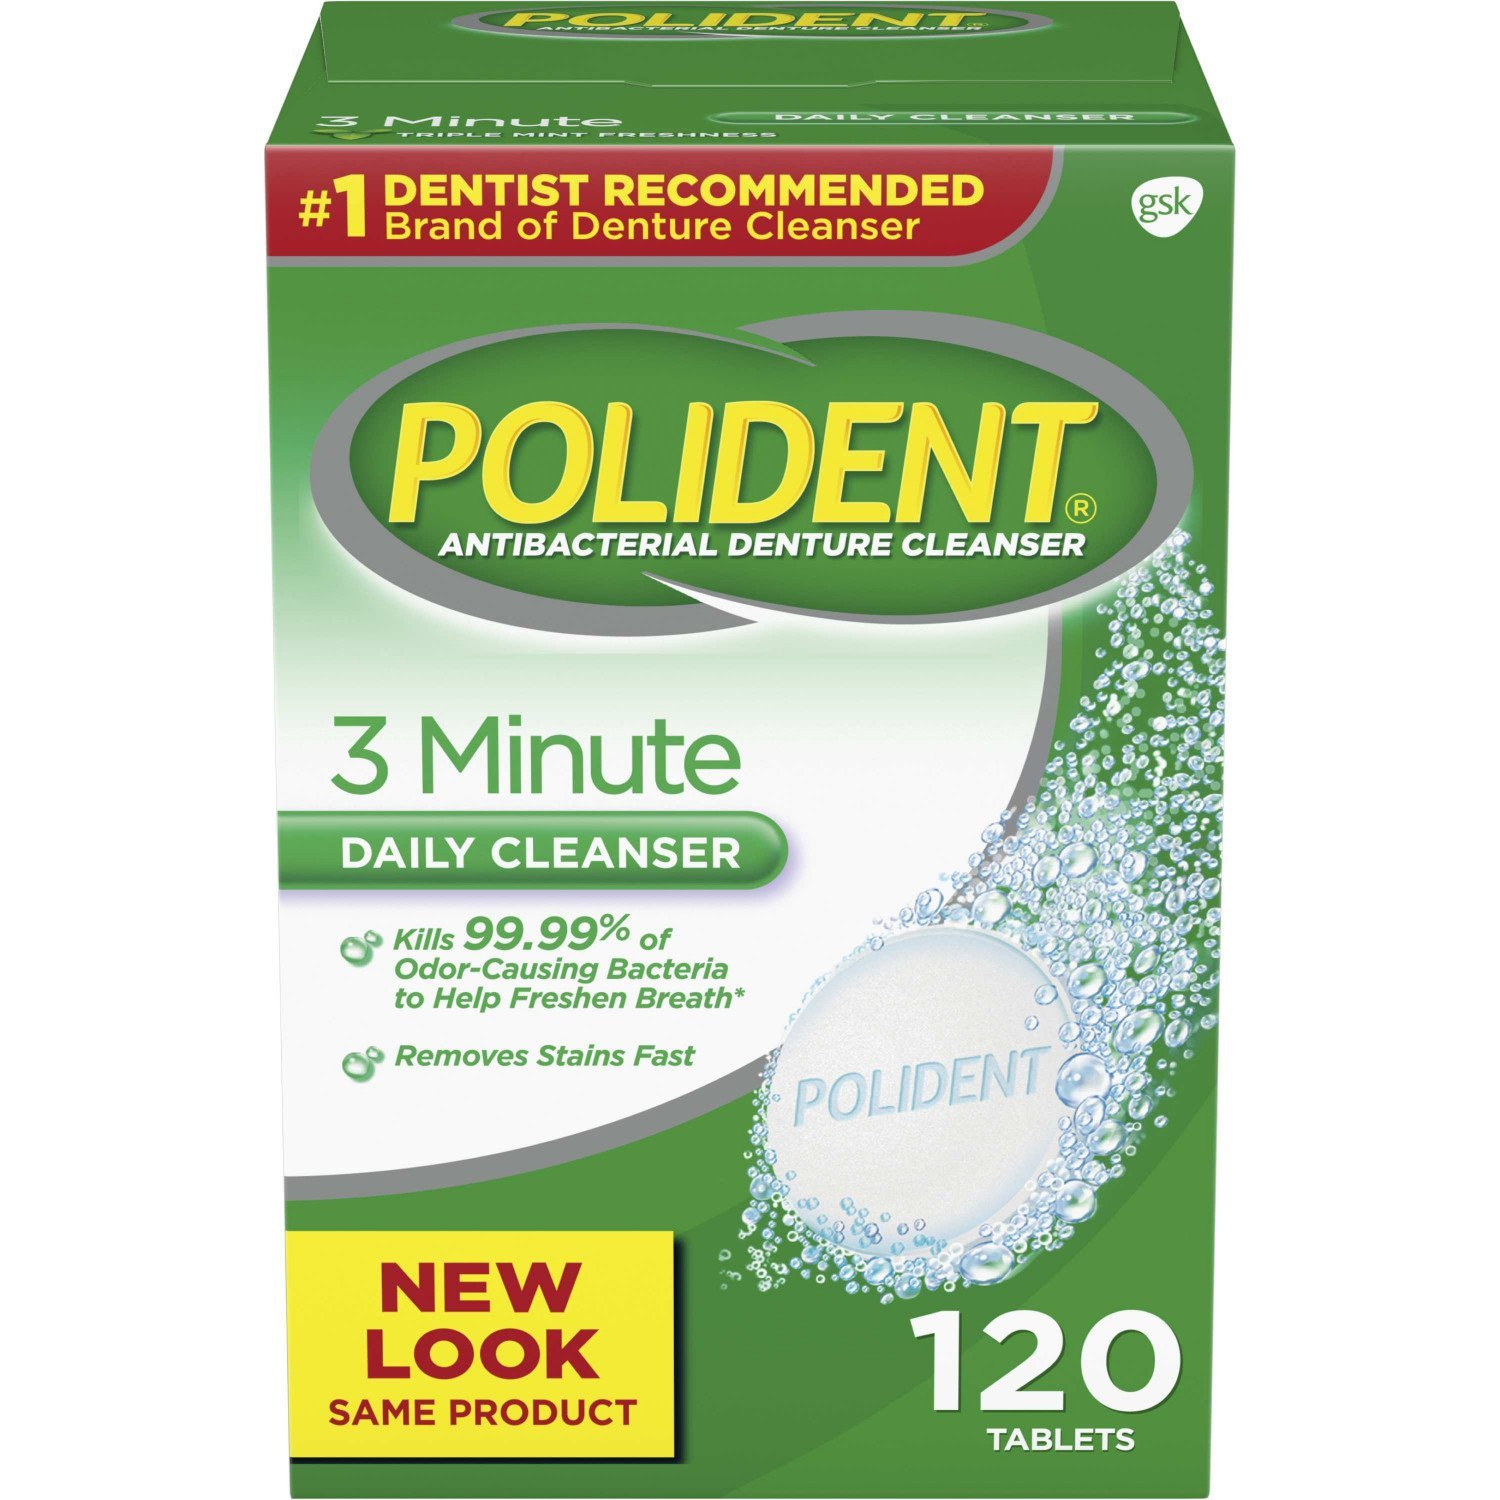 Polident 3 Minute Daily Cleanser - 120 Tablets